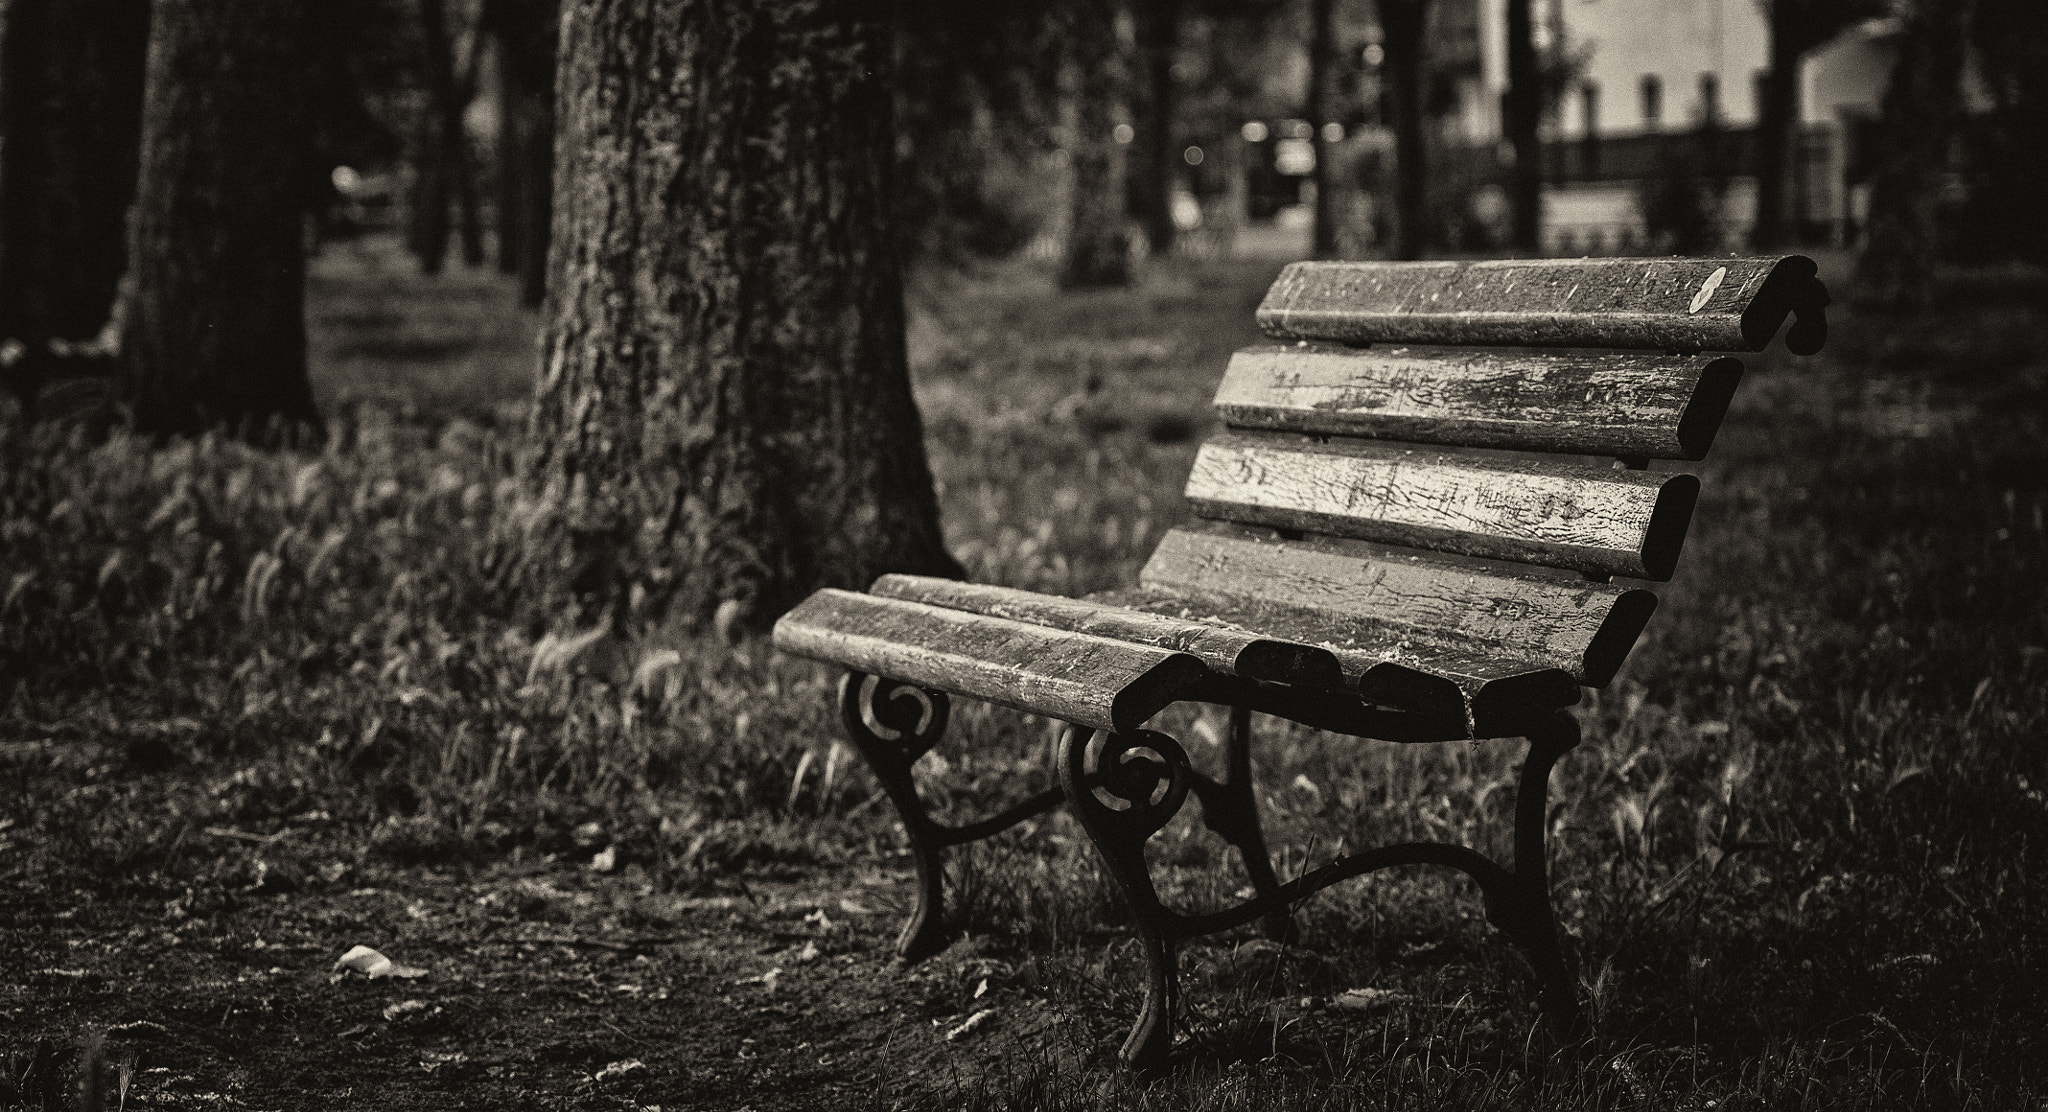 Photograph No one will see us by Antonio  longobardi on 500px